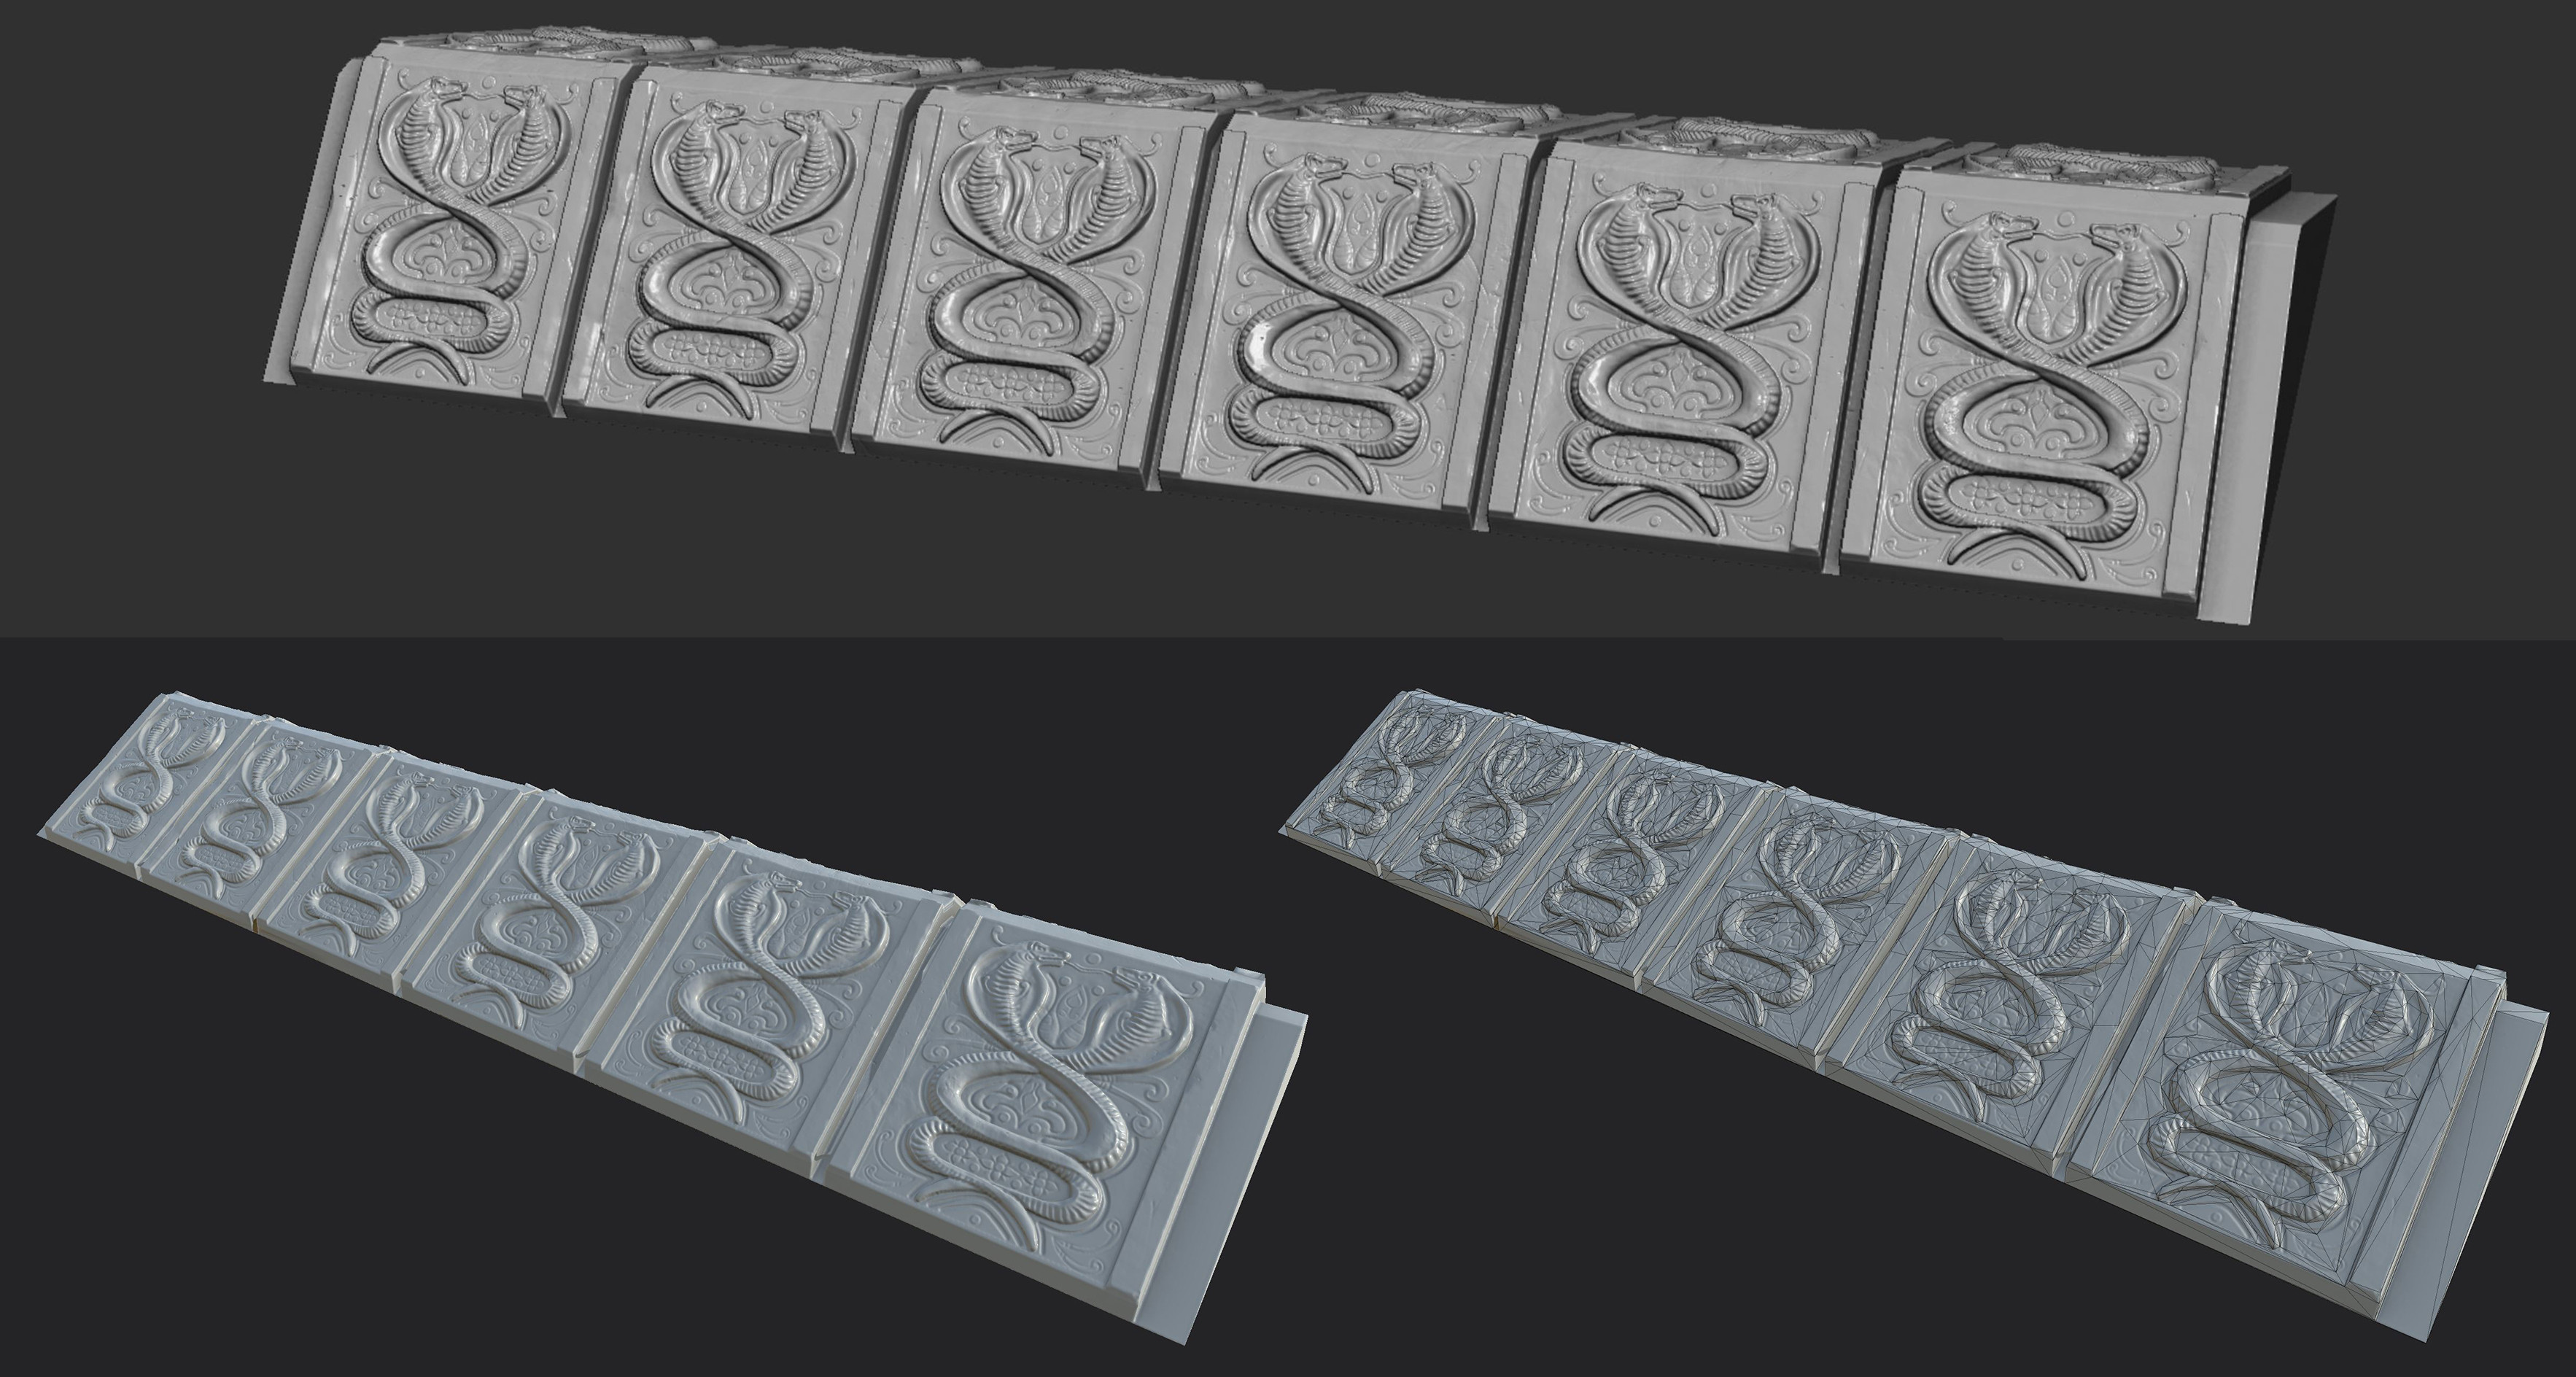 Zbrush model on top, low poly bake and wire-frame on bottom